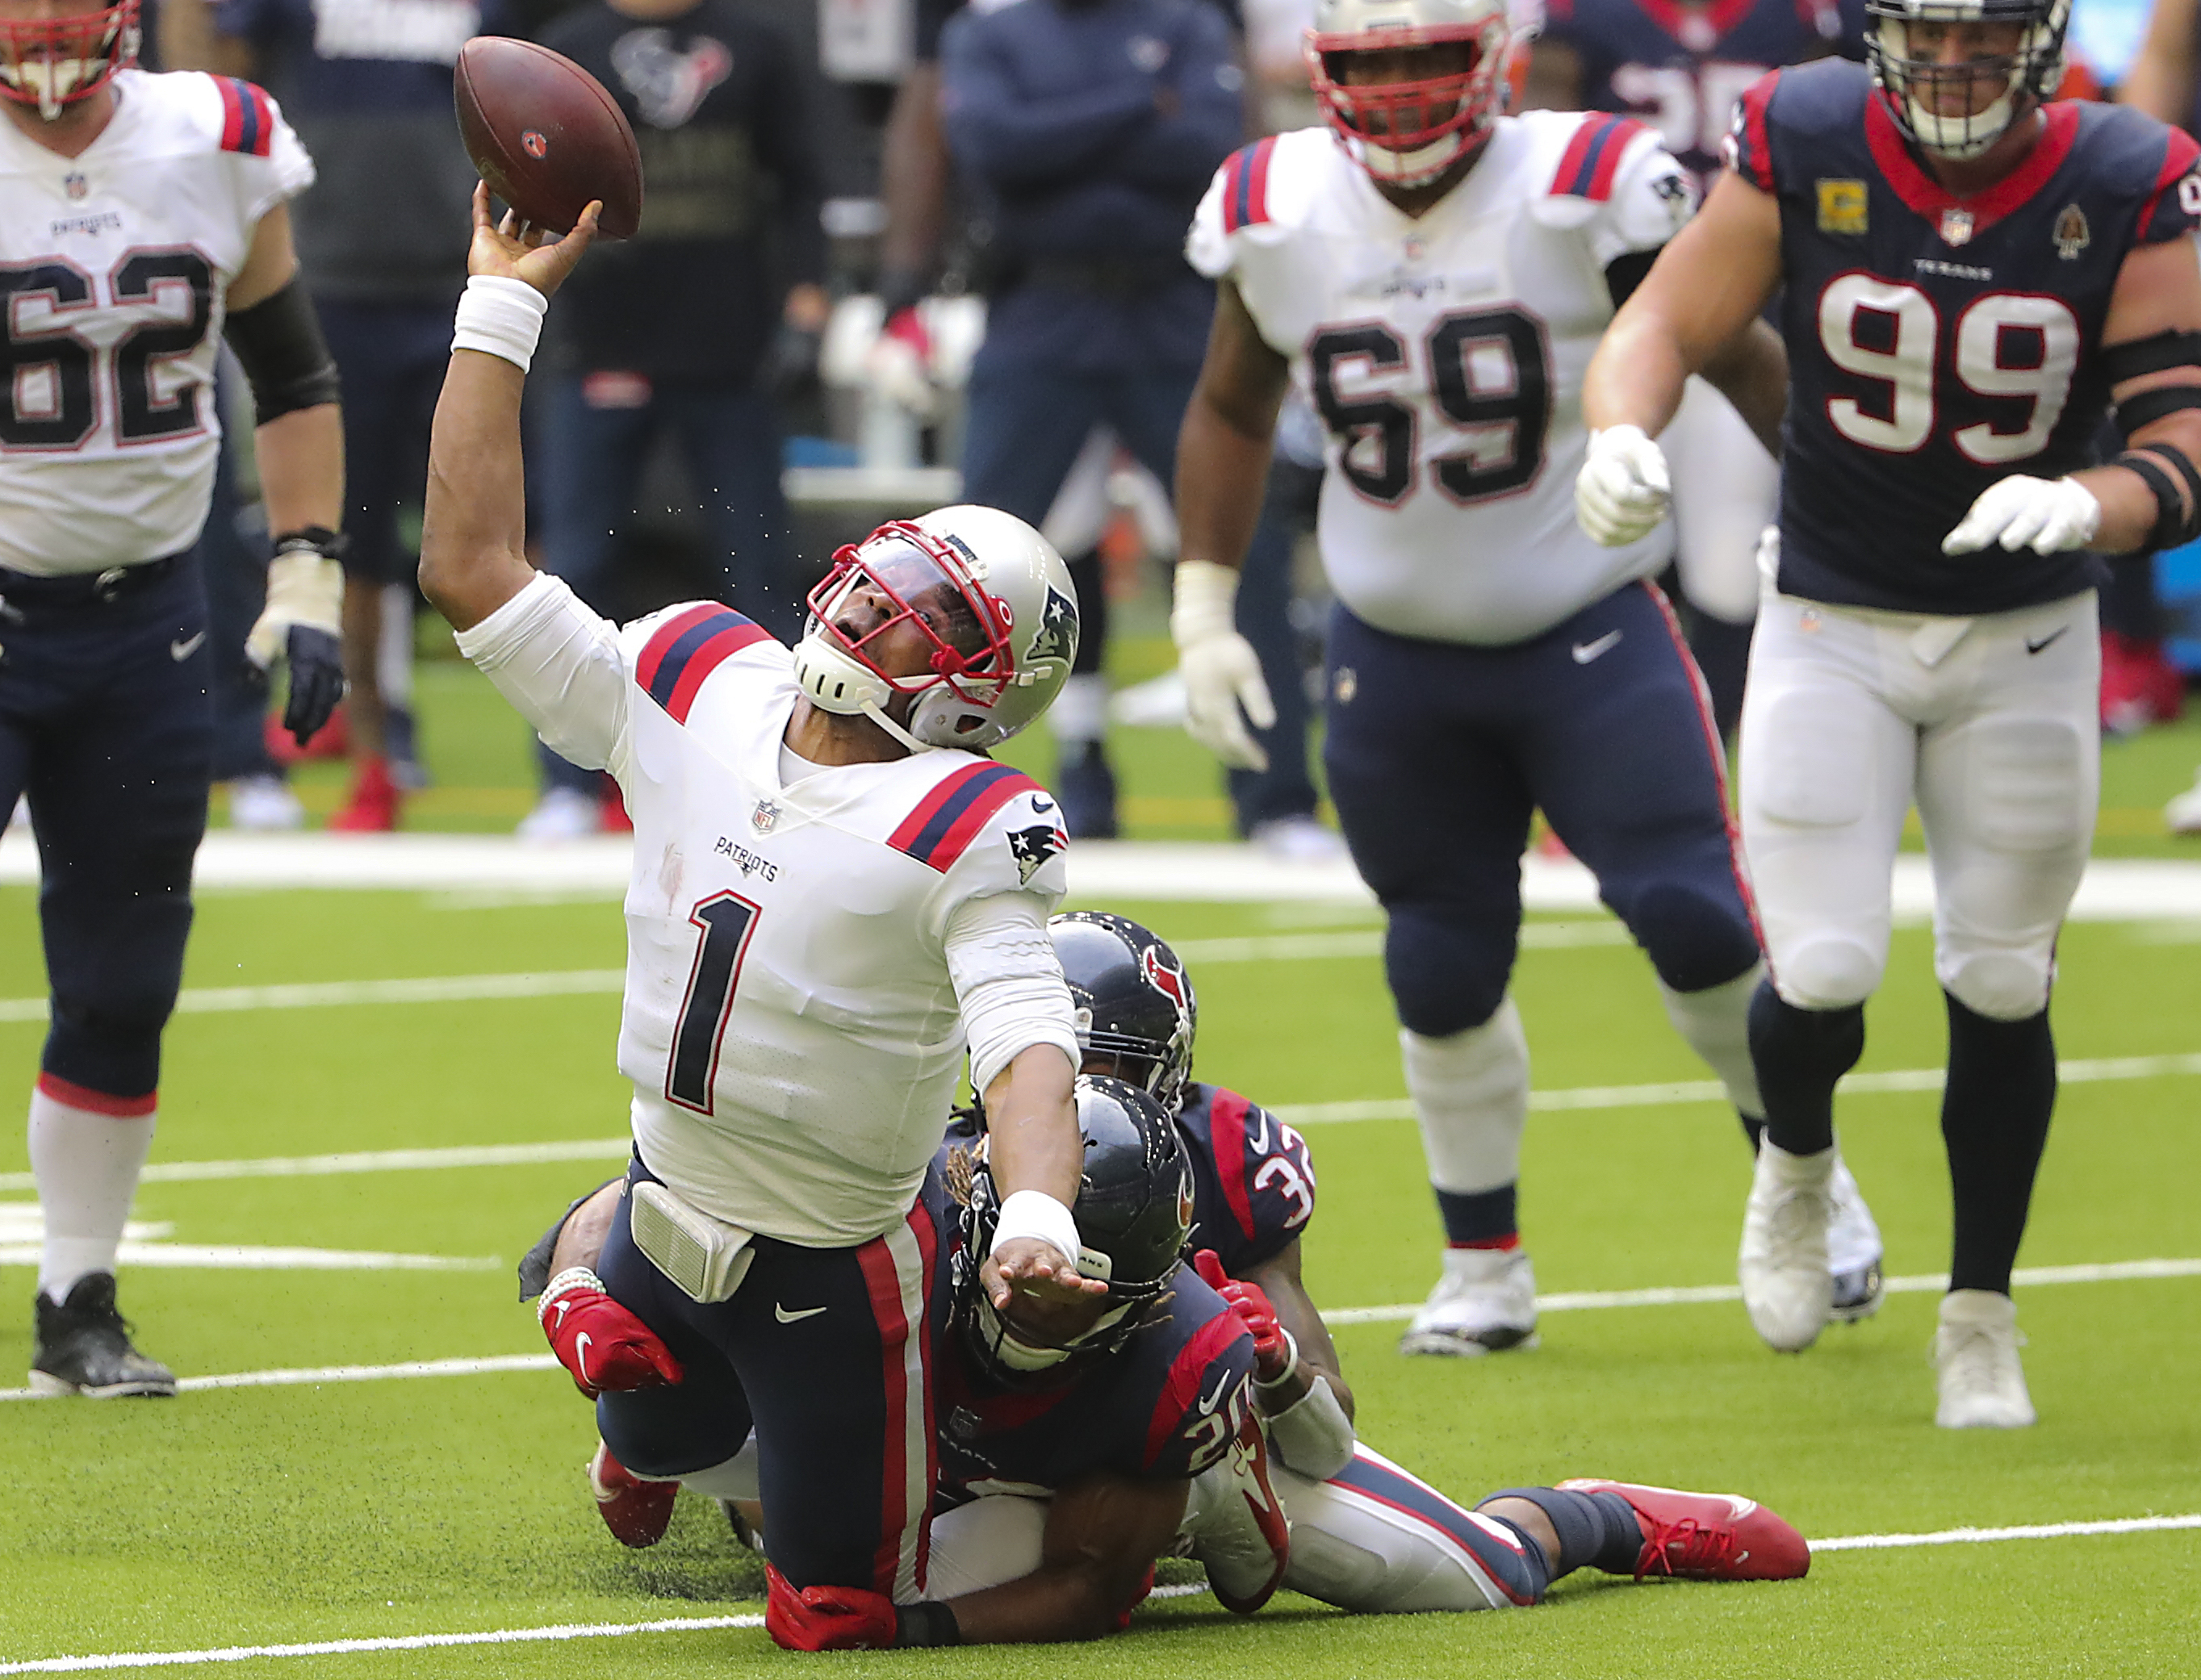 Patriots can't contain Deshaun Watson and Texans, fall to 4-6 - The Boston  Globe